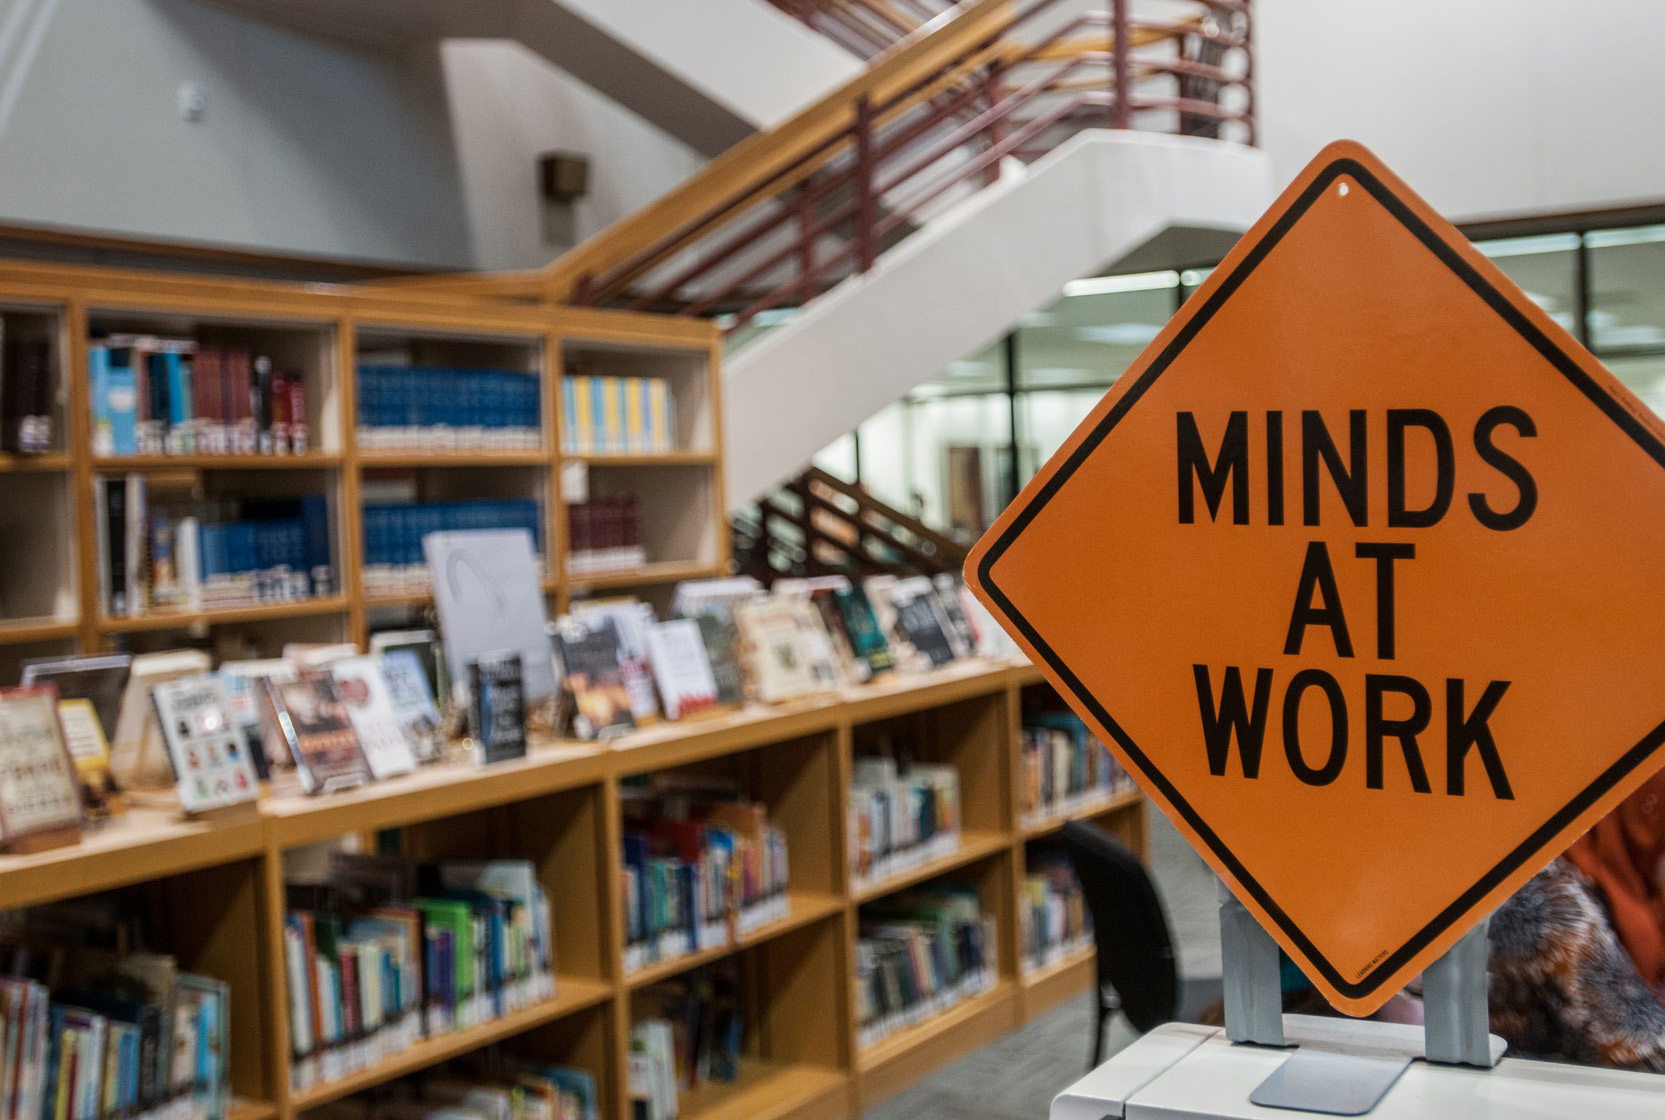 Library Minds At Work Sign